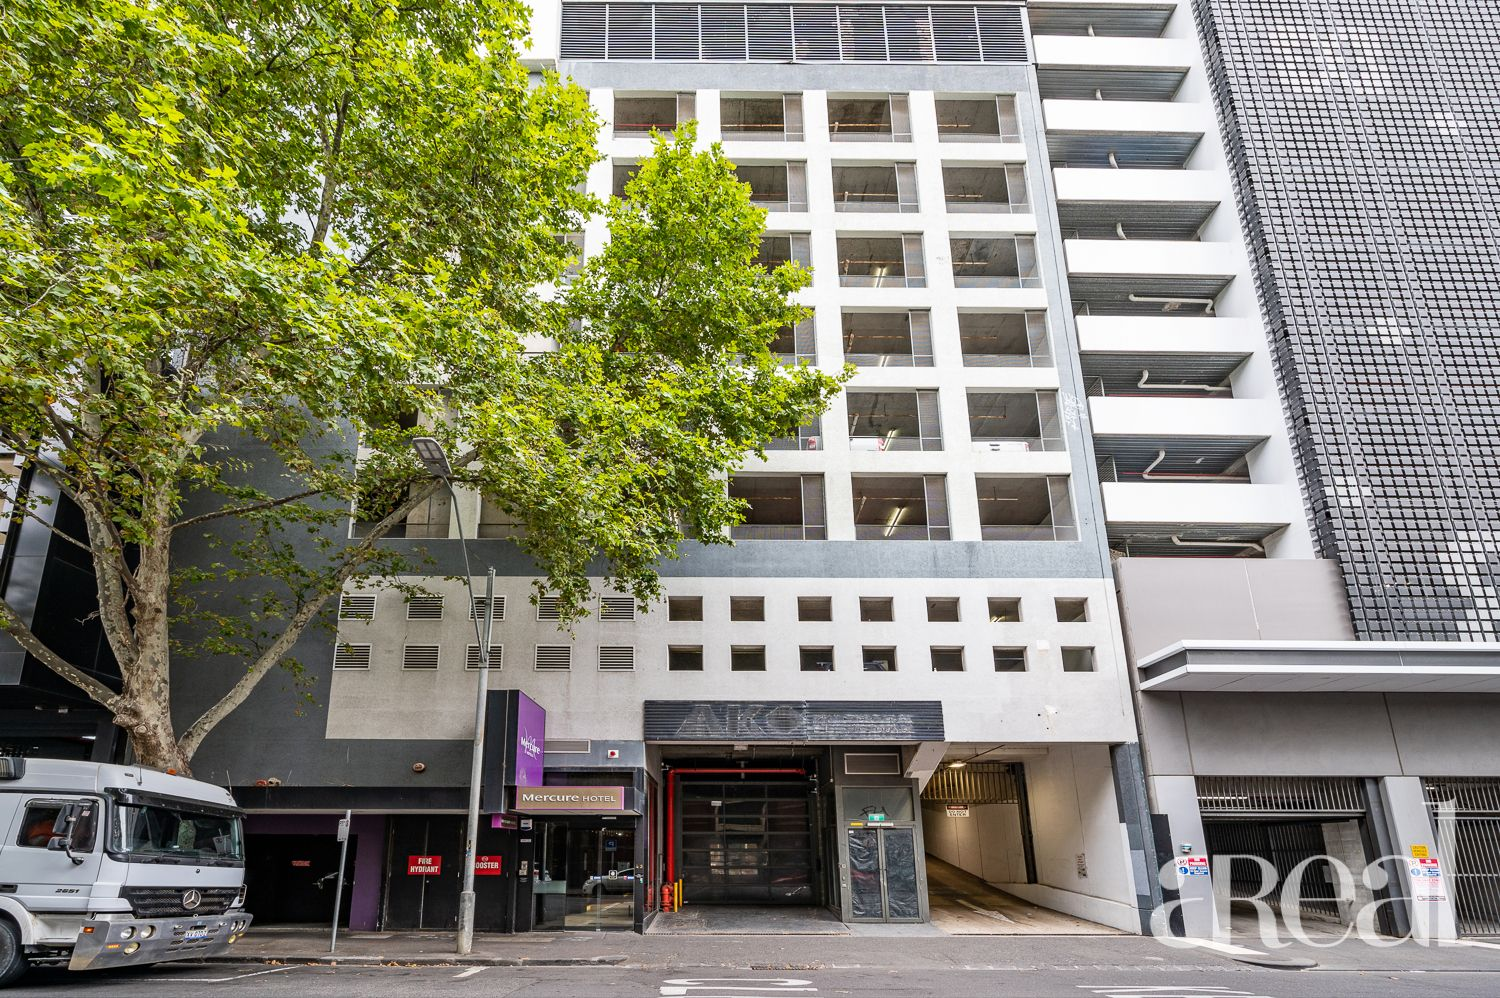 1234/43 Therry St, Melbourne VIC 3000